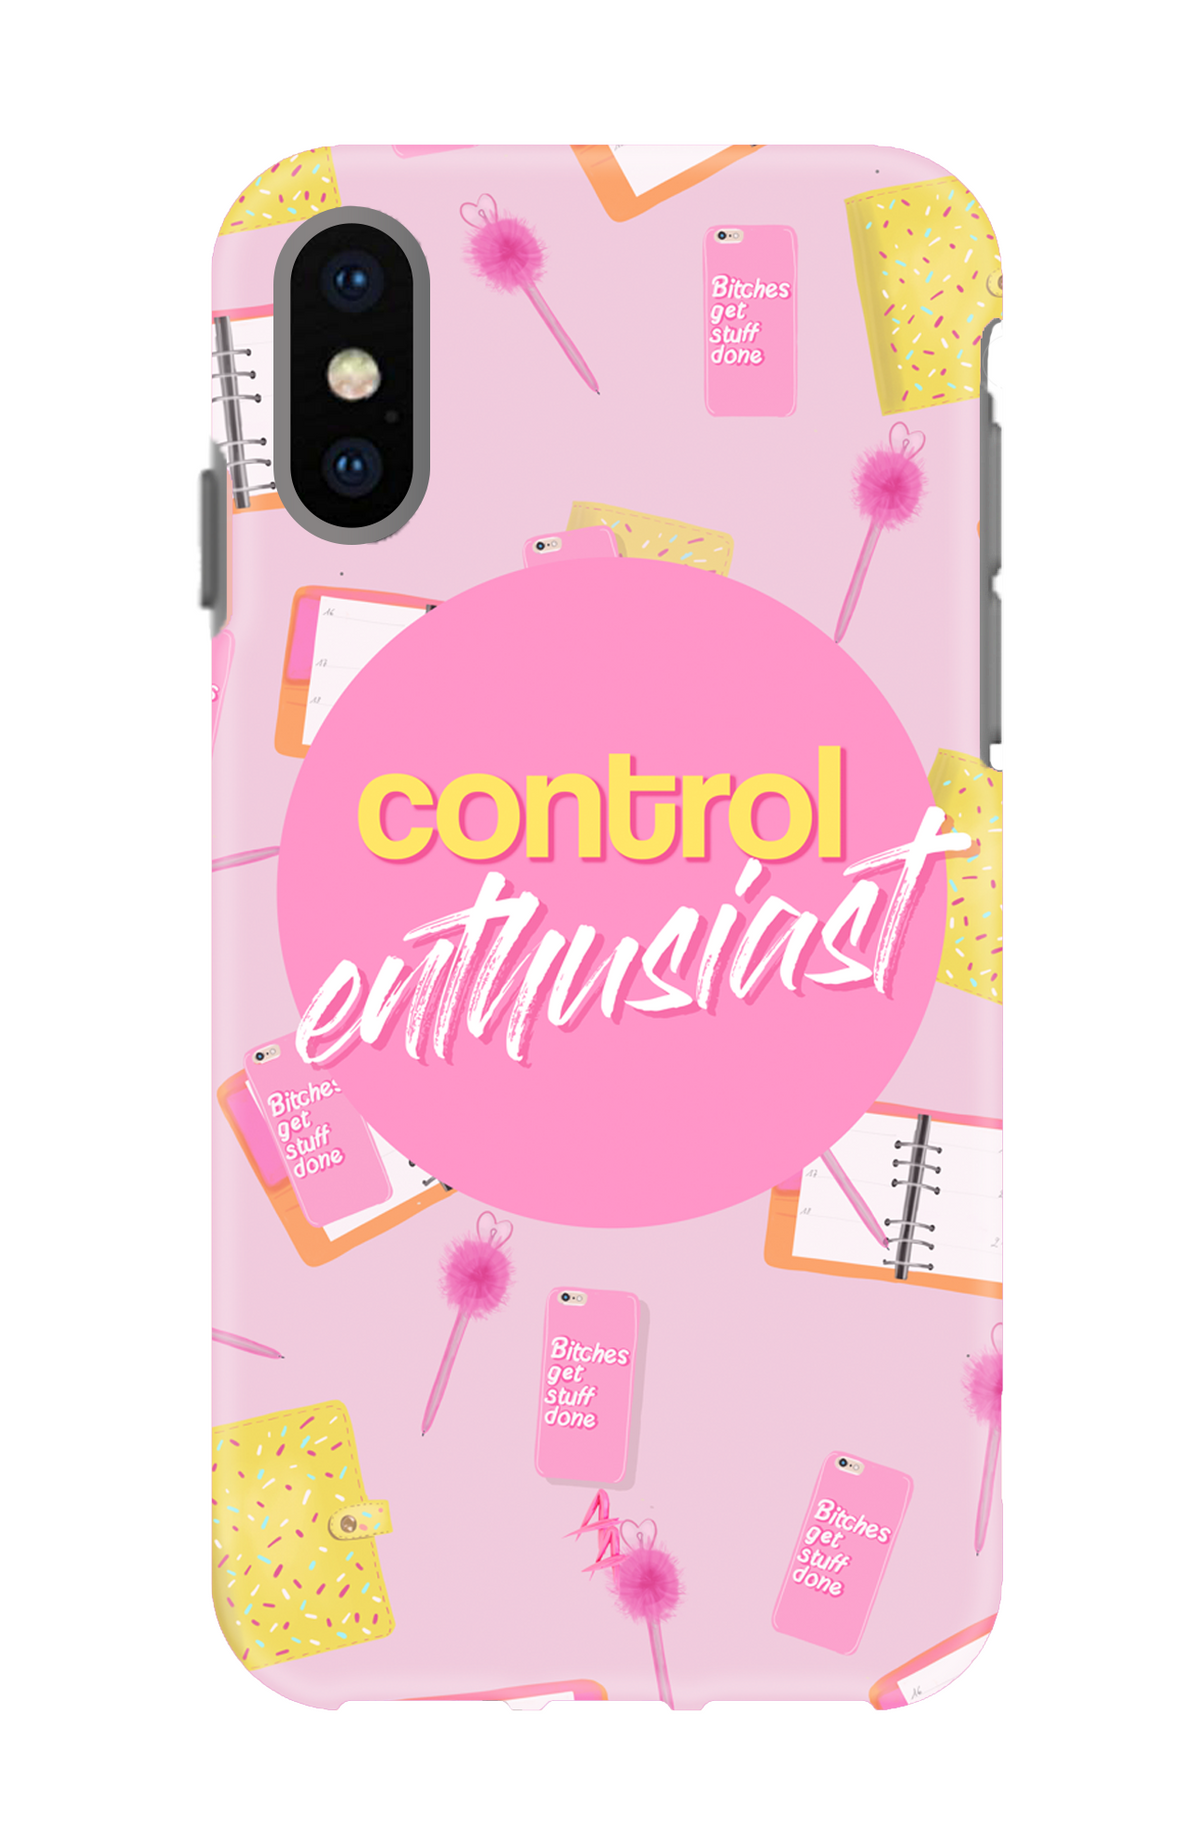 Control Enthusiast